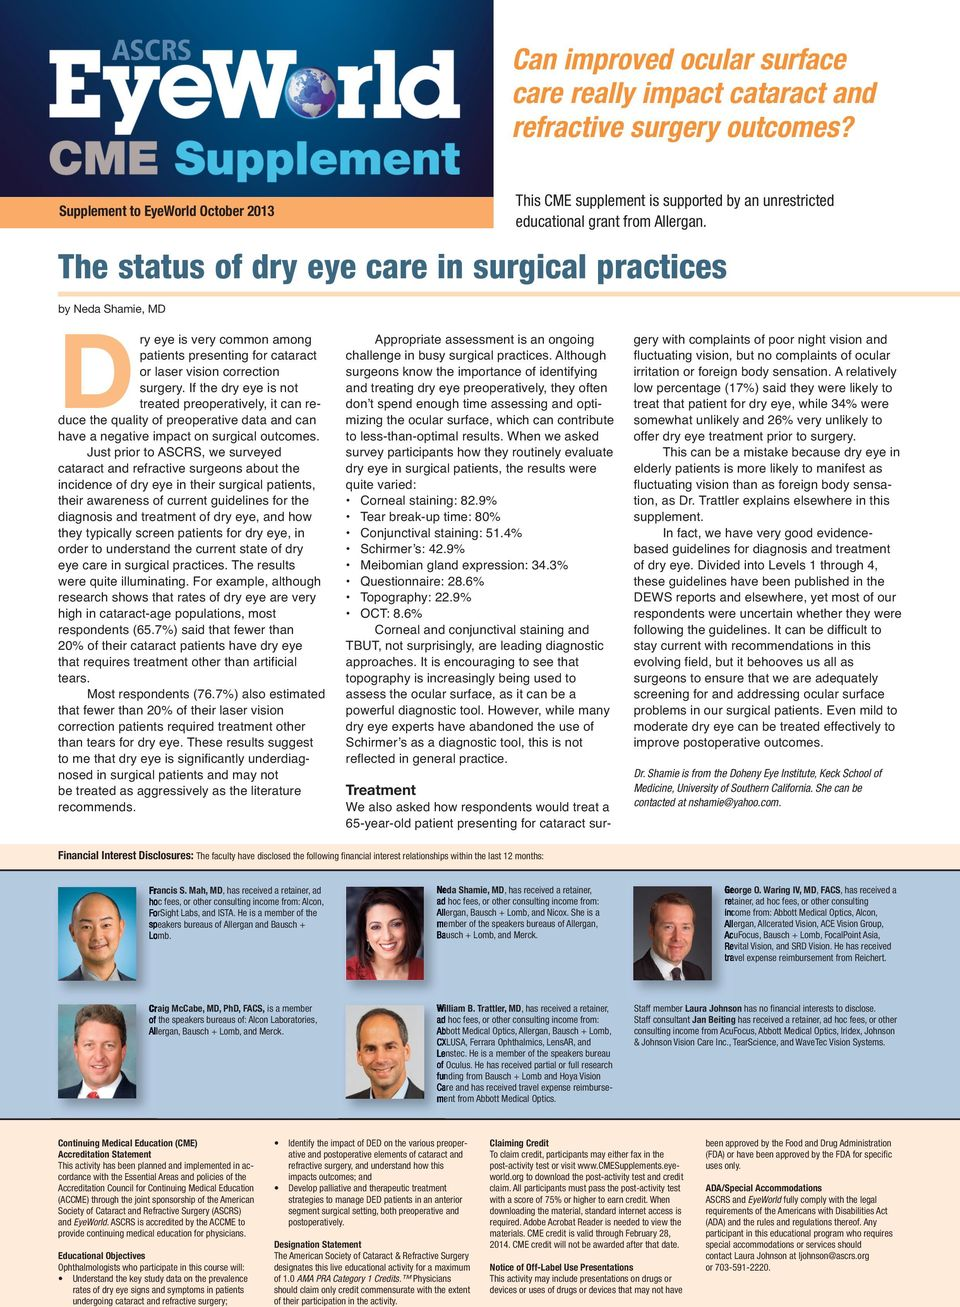 Dry eye is very common among patients presenting for cataract or laser vision correction surgery.